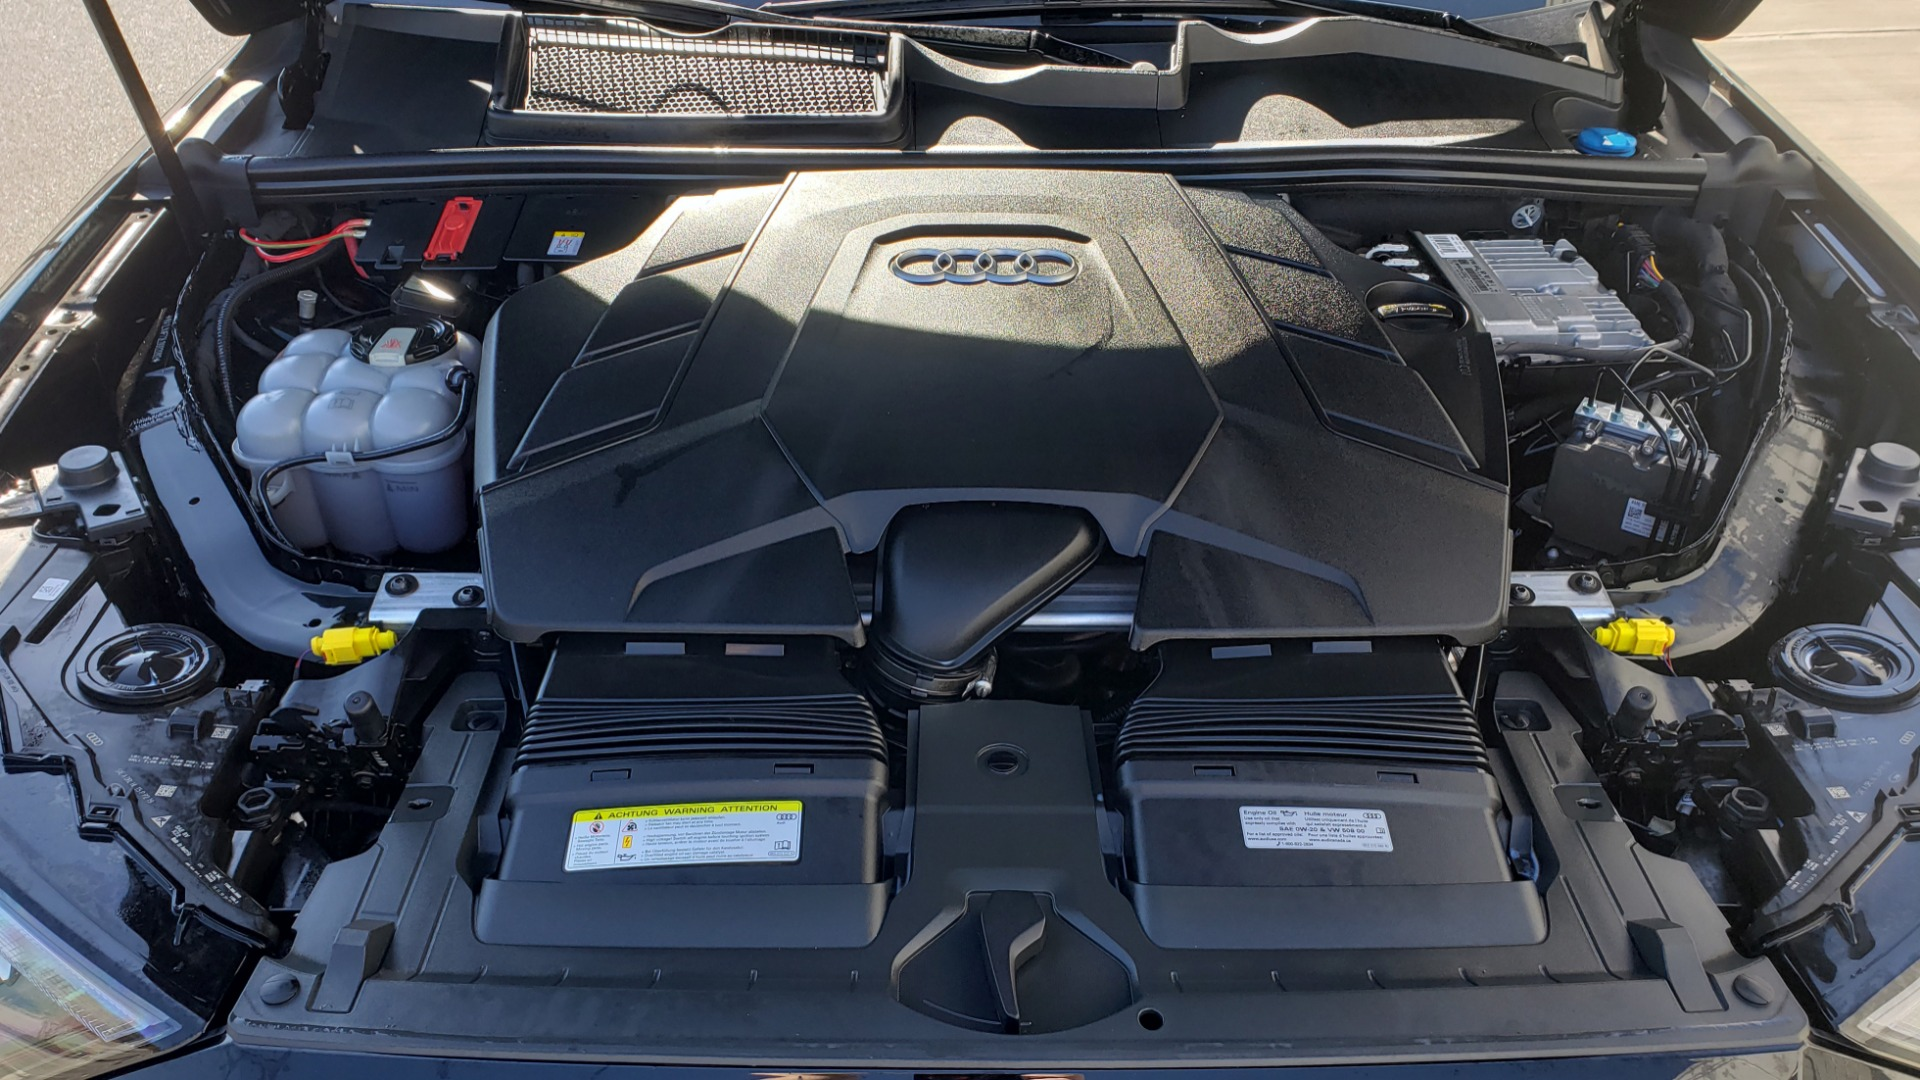 Used 2020 Audi Q7 PREMIUM PLUS / NAV / SUNROOF / 3-ROW / REARVIEW for sale $50,695 at Formula Imports in Charlotte NC 28227 12